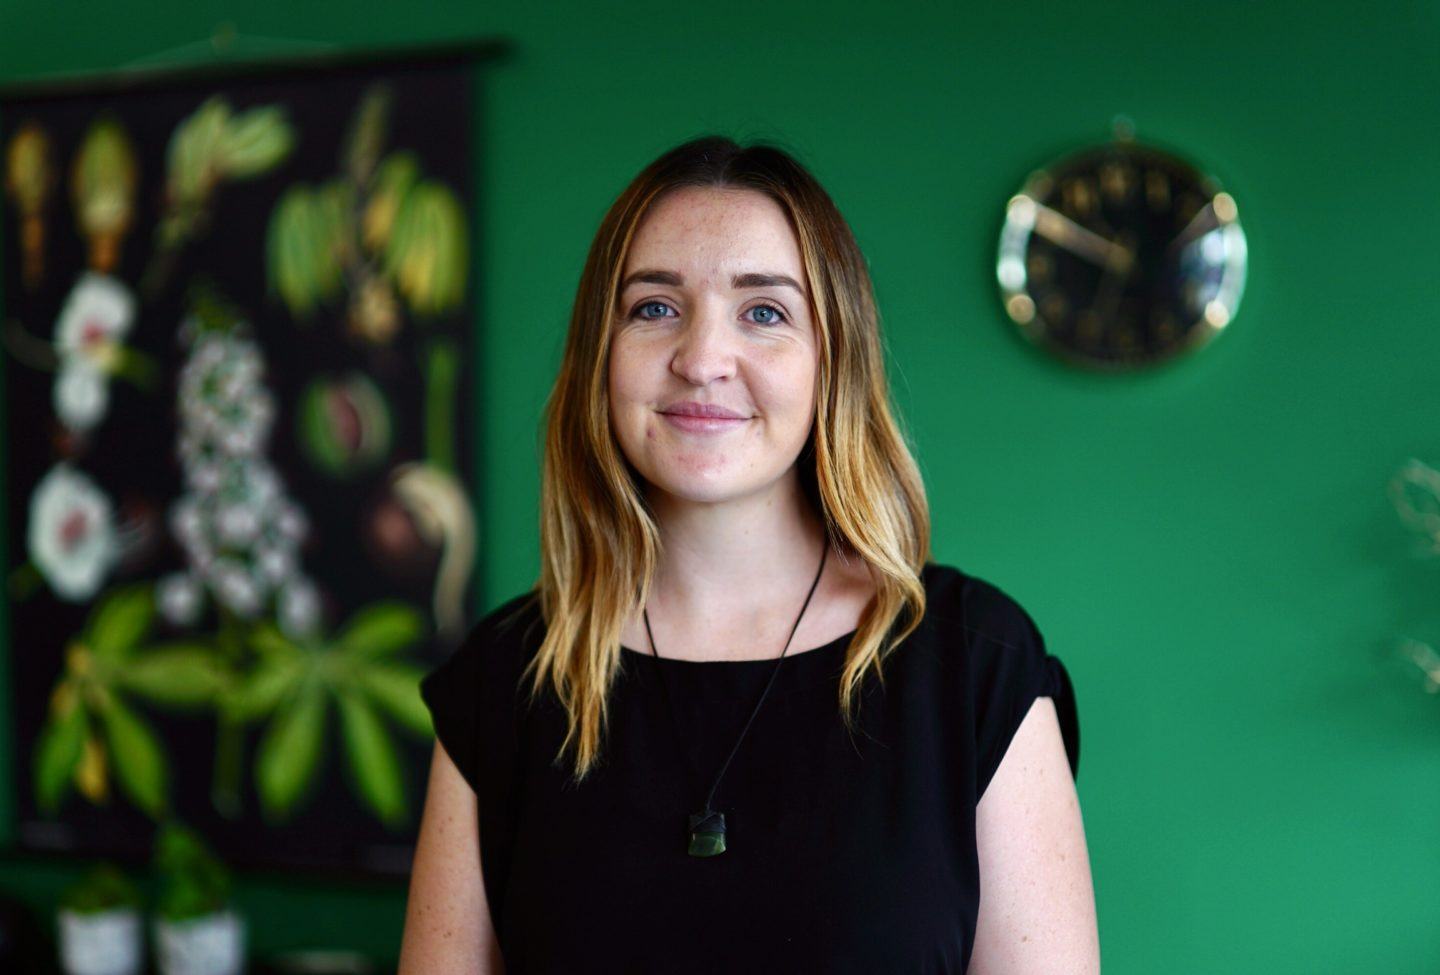 Photograph of Bex Taylor, Project Manager at The Mind Lab